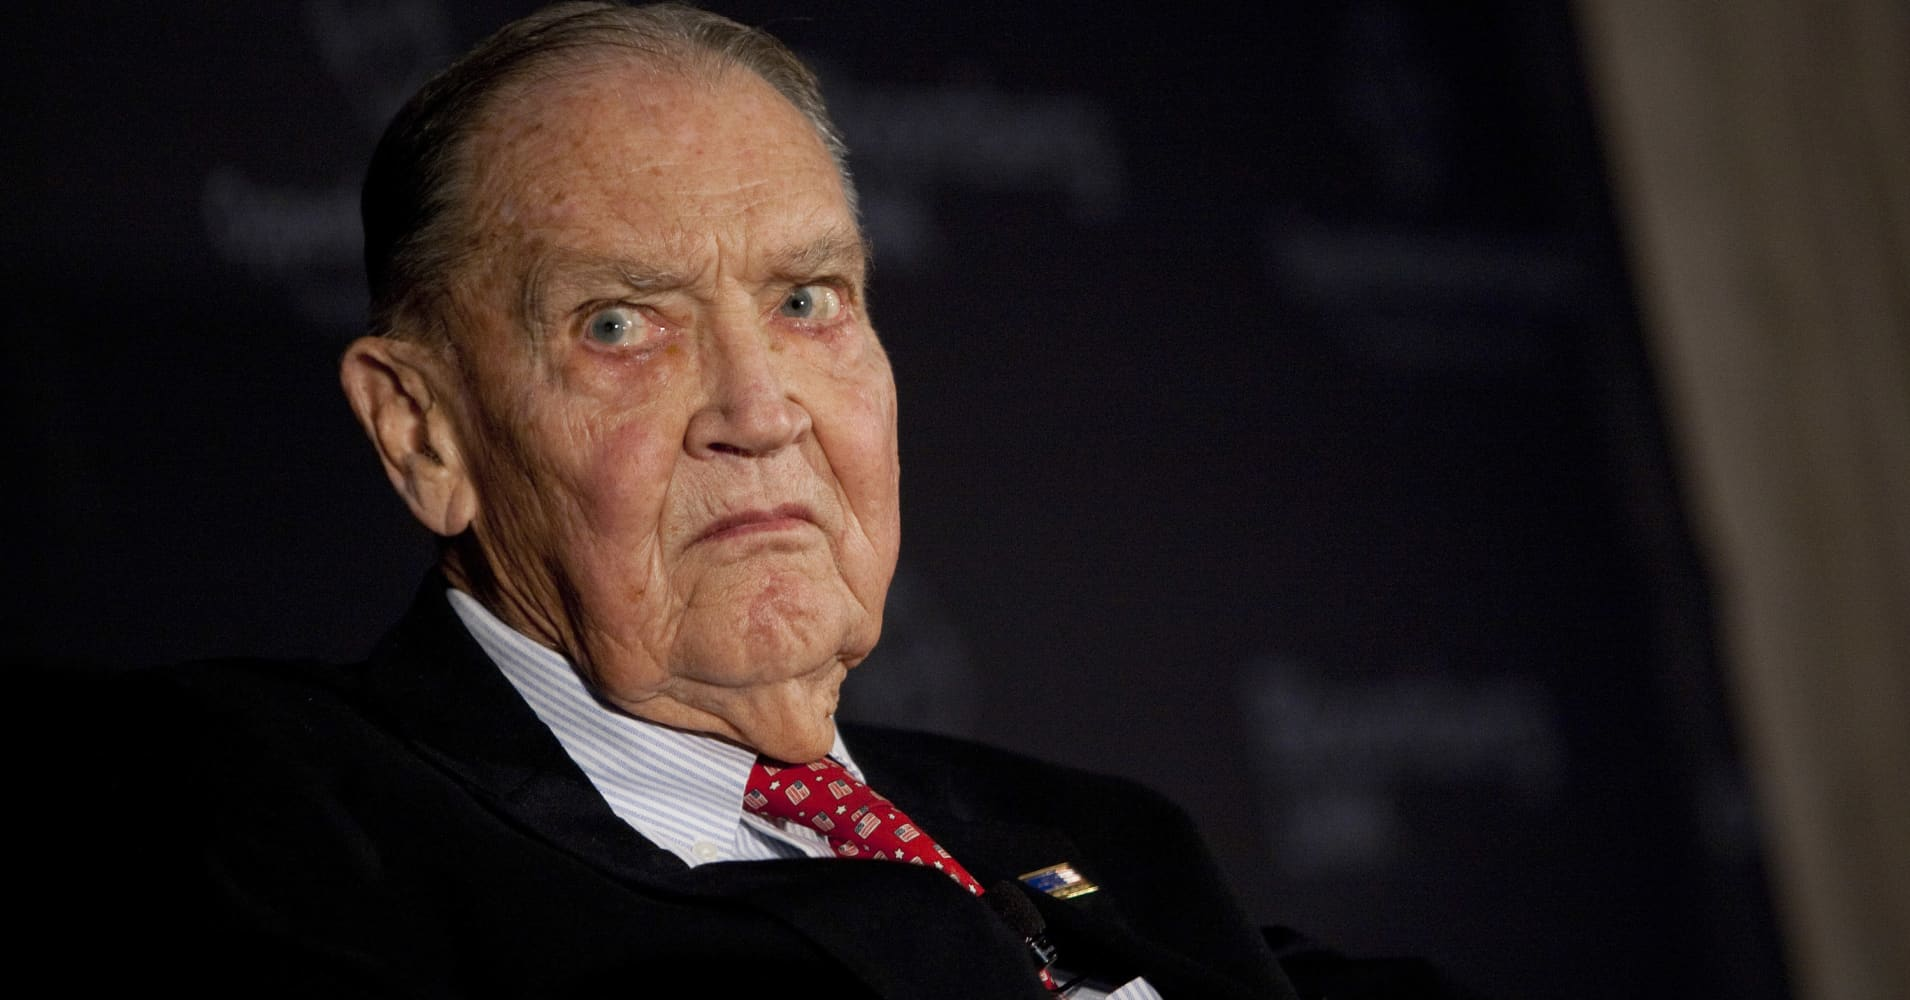 Jack Bogle, founder of the Vanguard Group, pauses at a portfolio manager conference in New York.